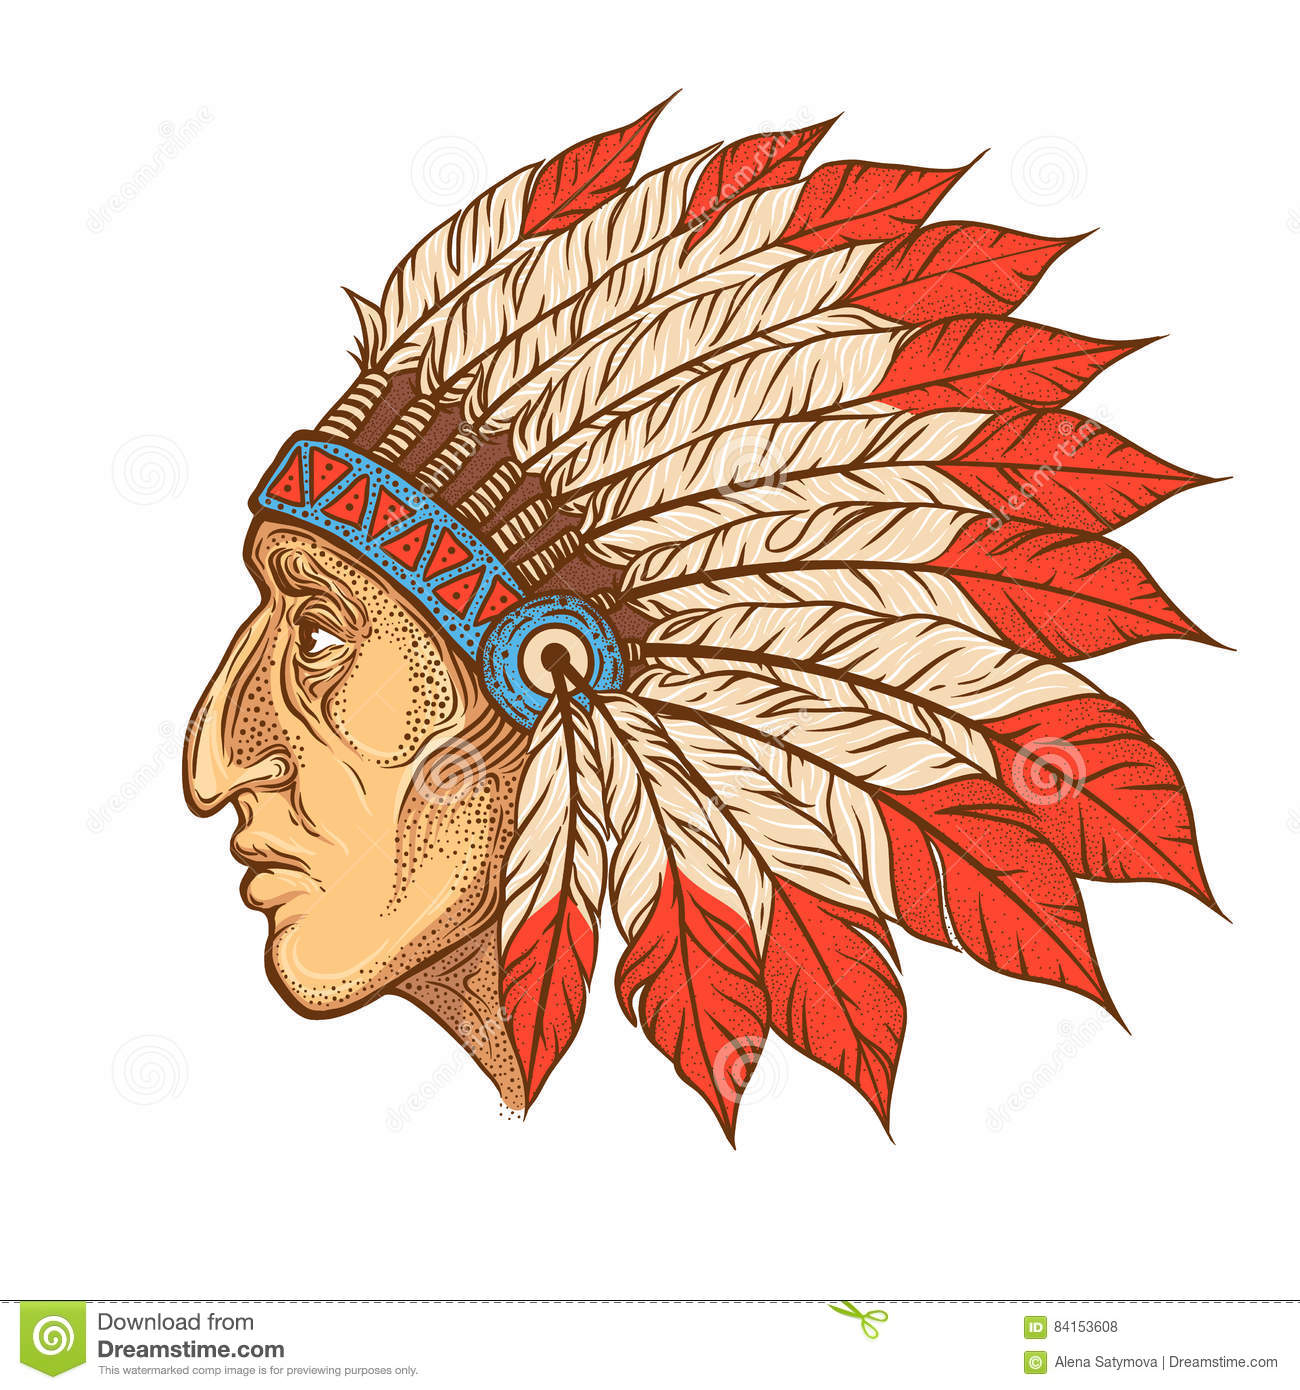 a8d3255450ccf Native American Indian chief head profile. Vector vintage illustration.